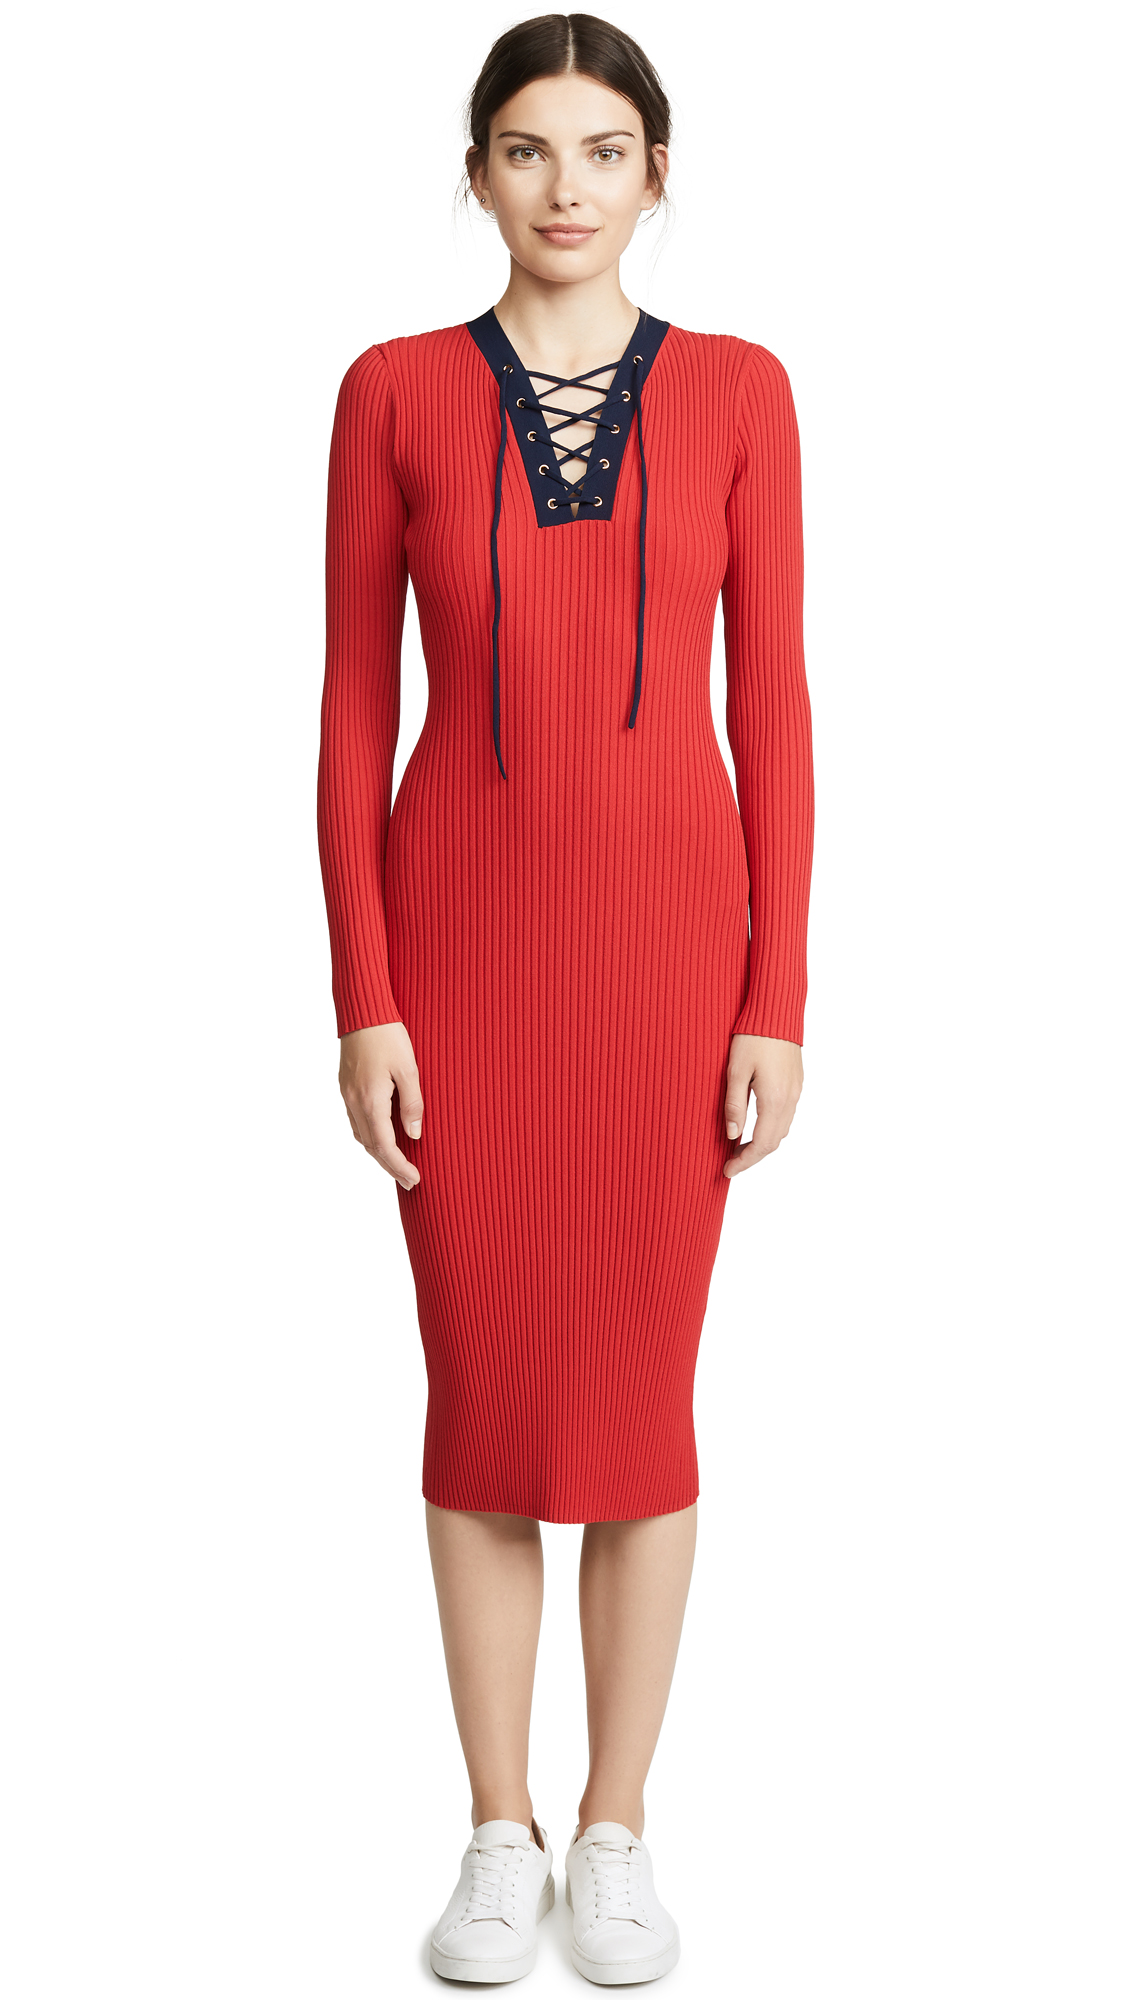 Lace Up Sweater Dress, Cherry/New Navy